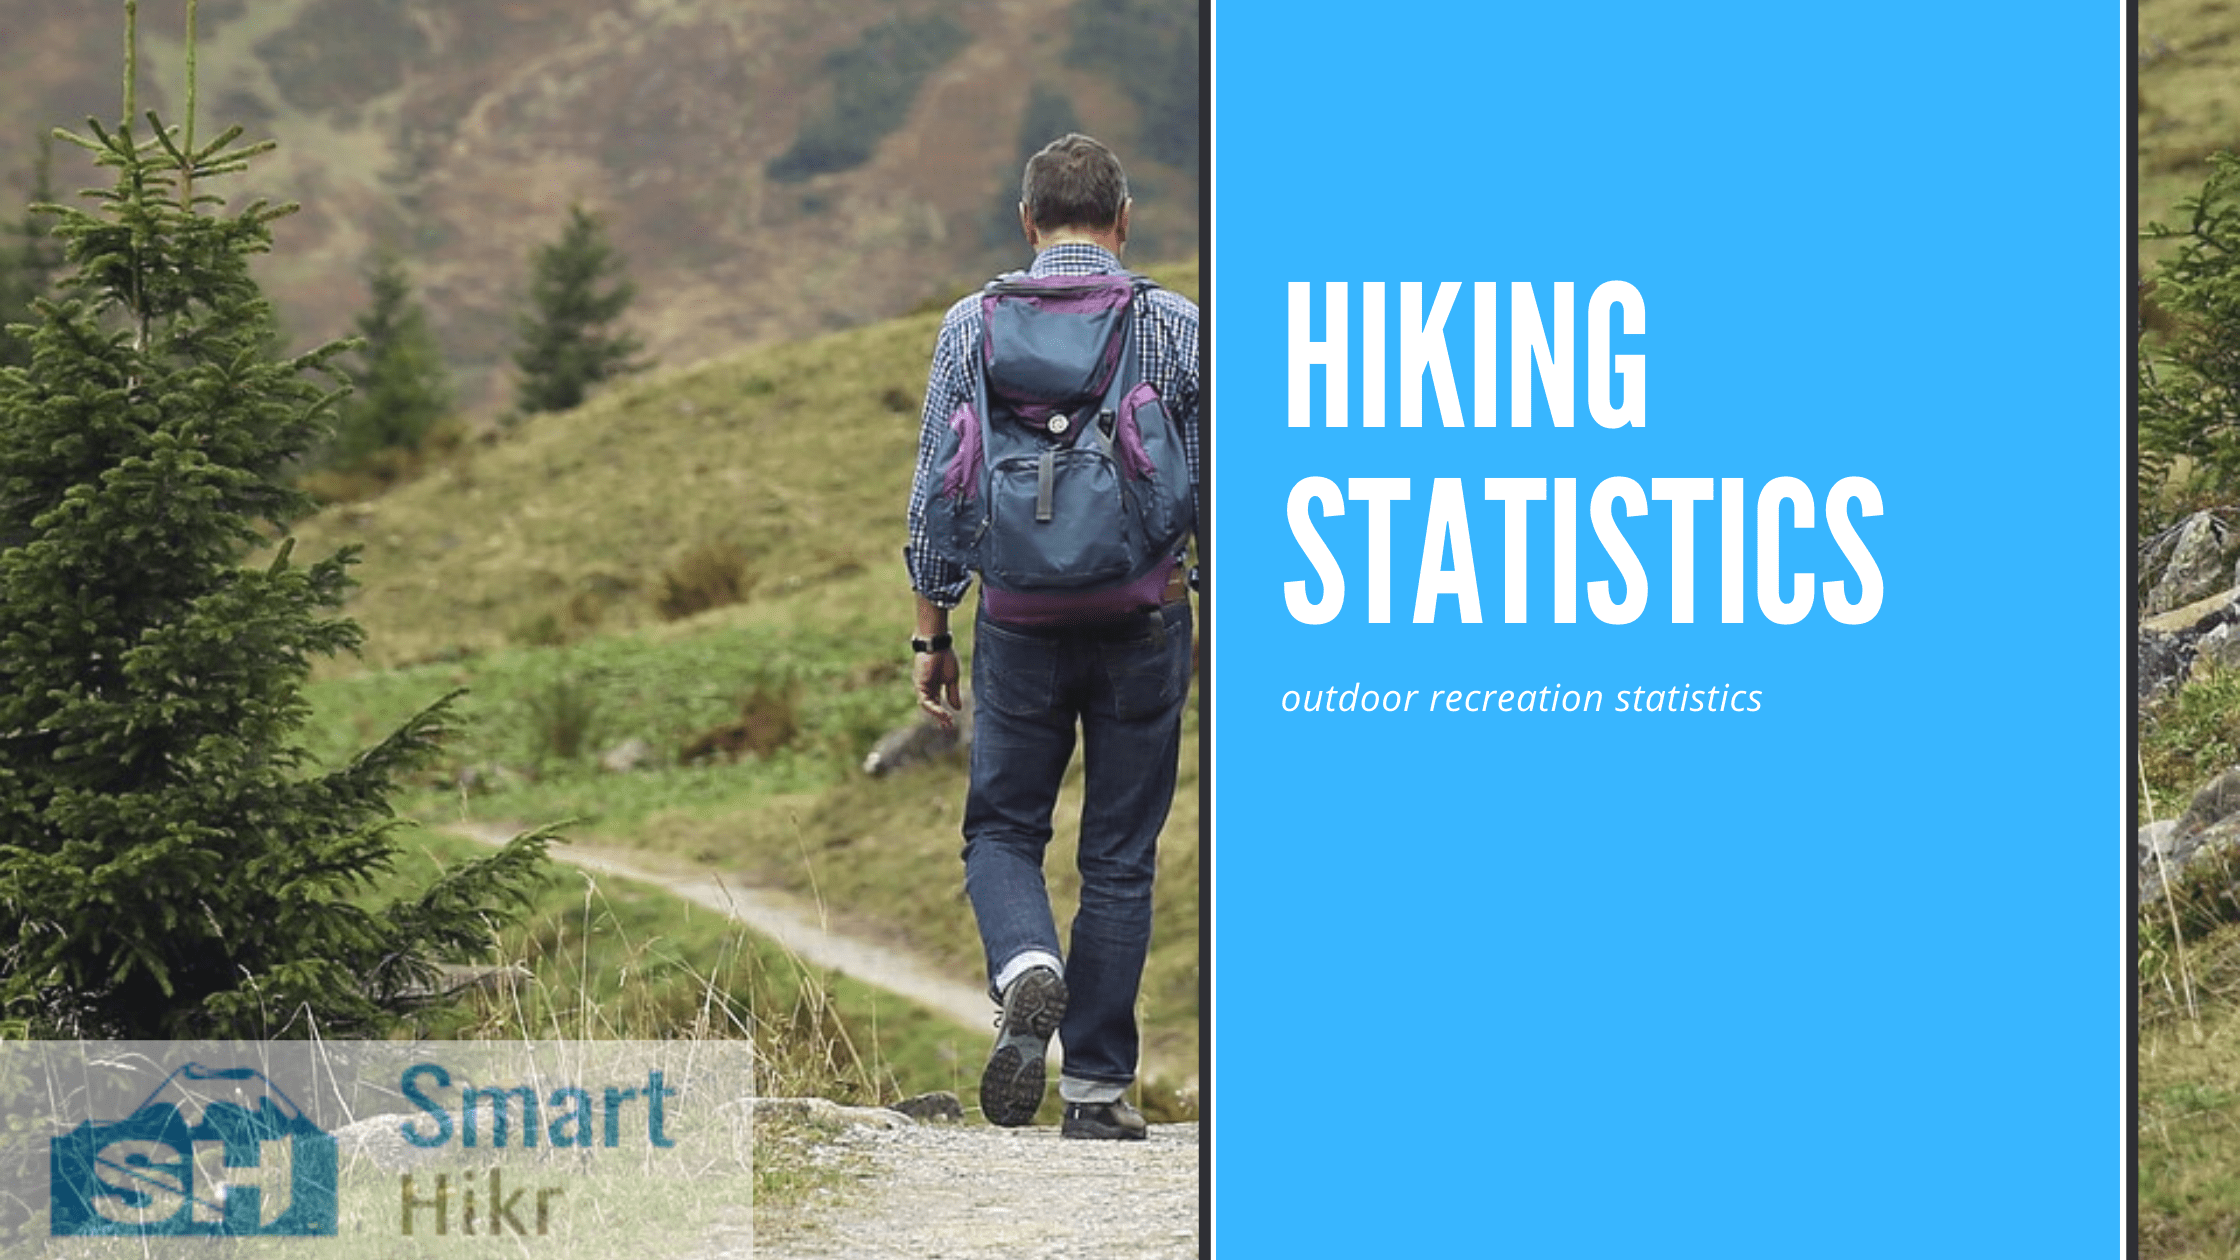 Outdoor recreation statistics - hiking statistics